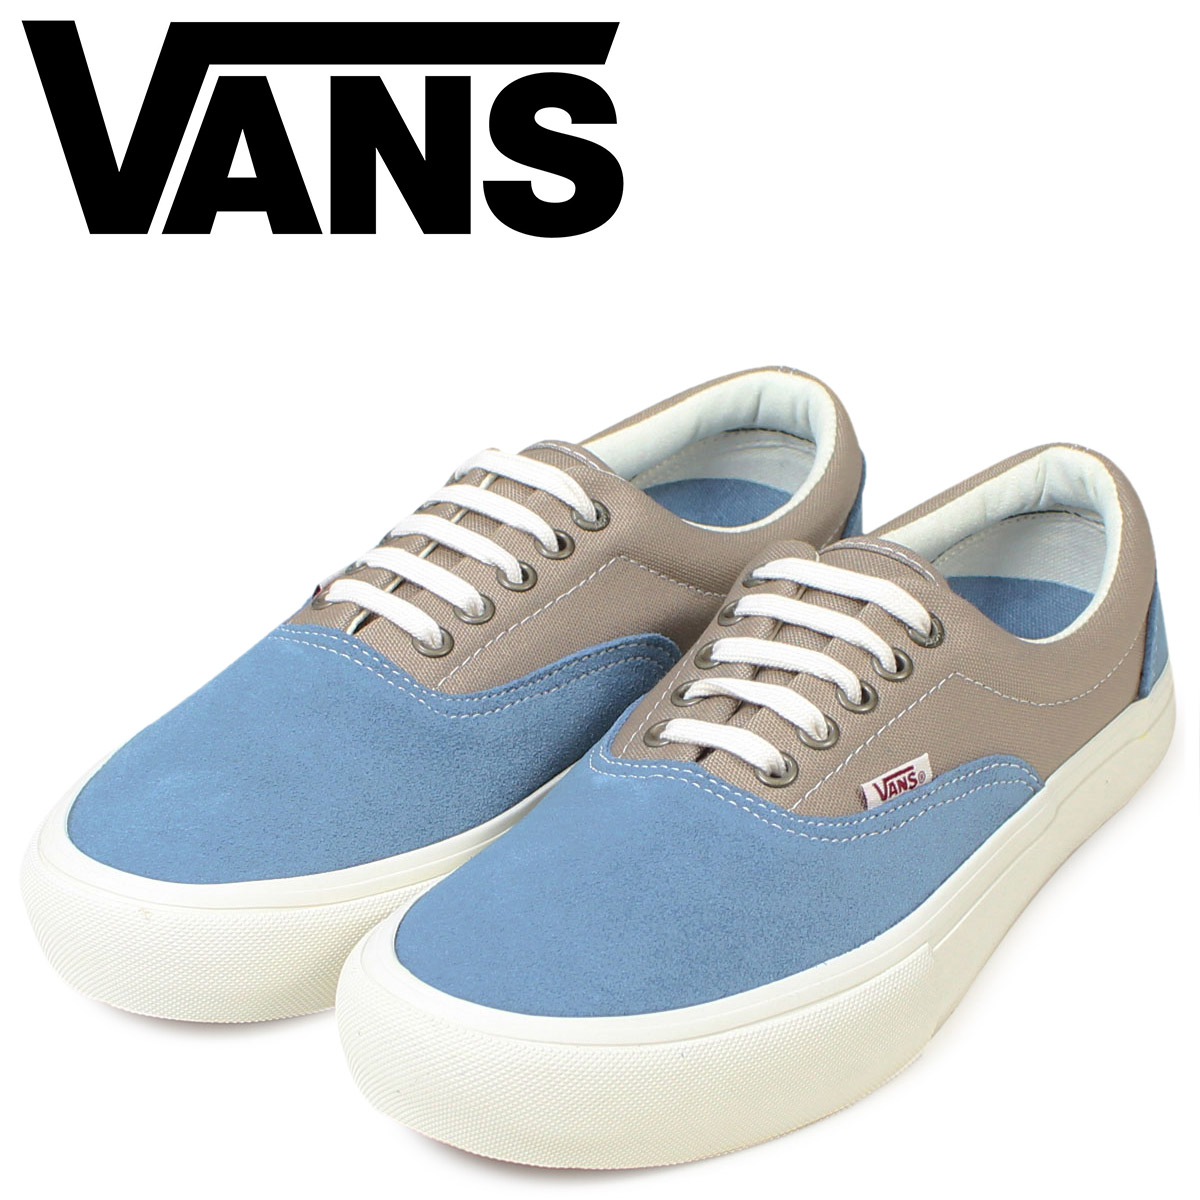 5e7e736eee Vans ERA VANS slip-ons gills men sneakers station wagons VN000VFBK1A shoes  blue X beige